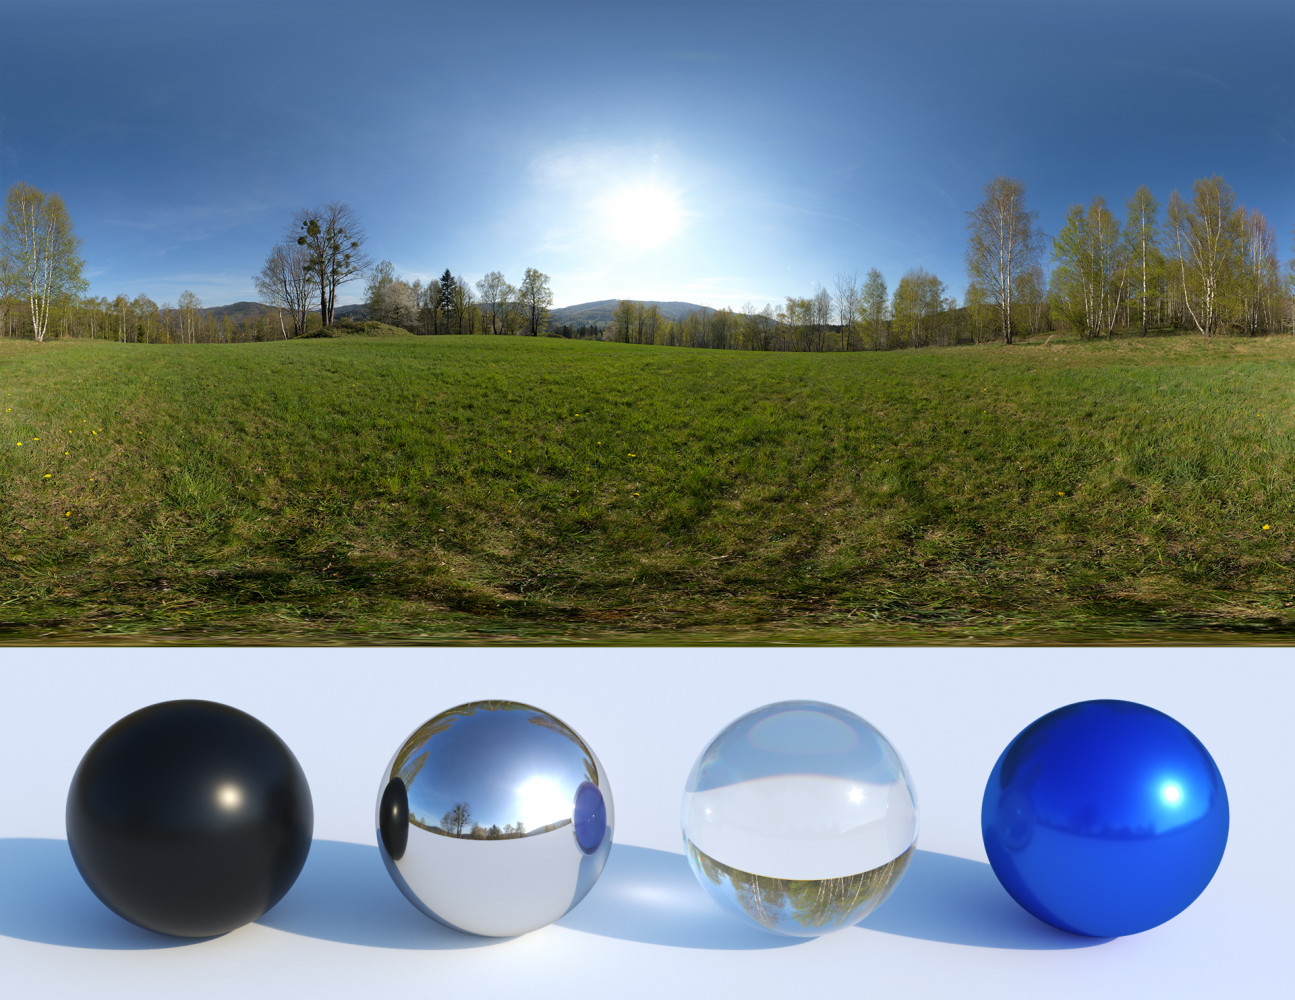 Mountain meadow hdri